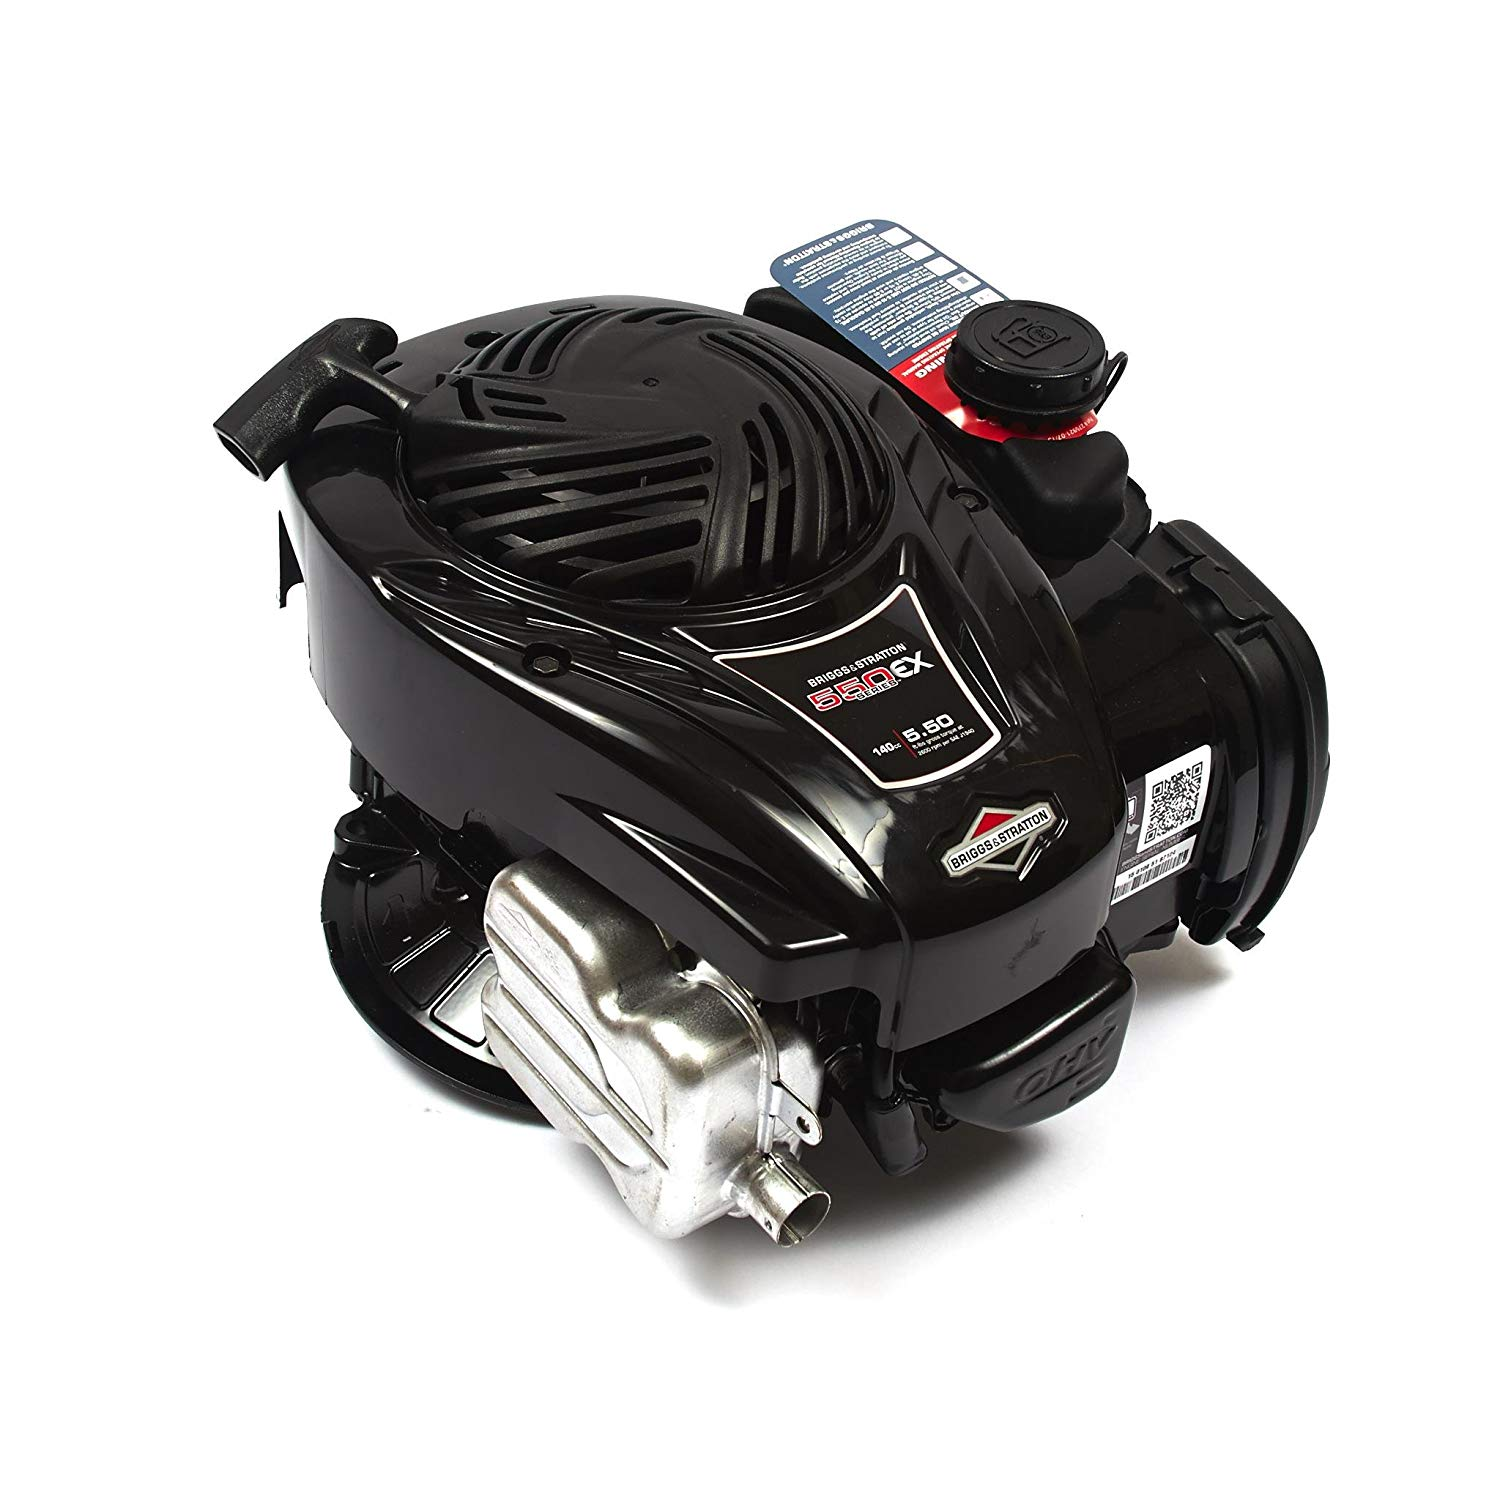 Cheap F1 Engine Specs, find F1 Engine Specs deals on line at Alibaba com